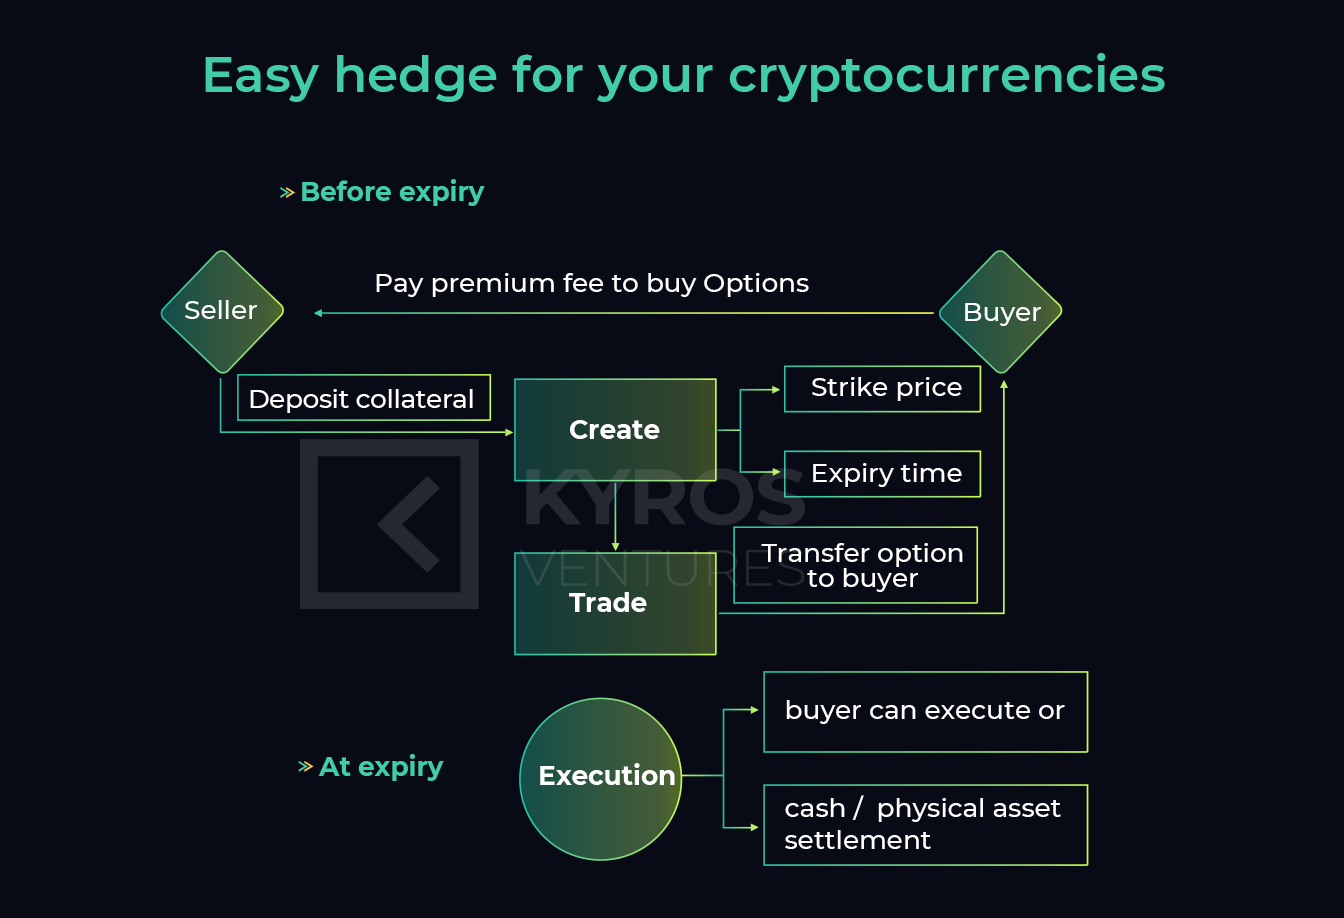 Introducing The Hedget Protocol - Building A Decentralized Options Trading Platform